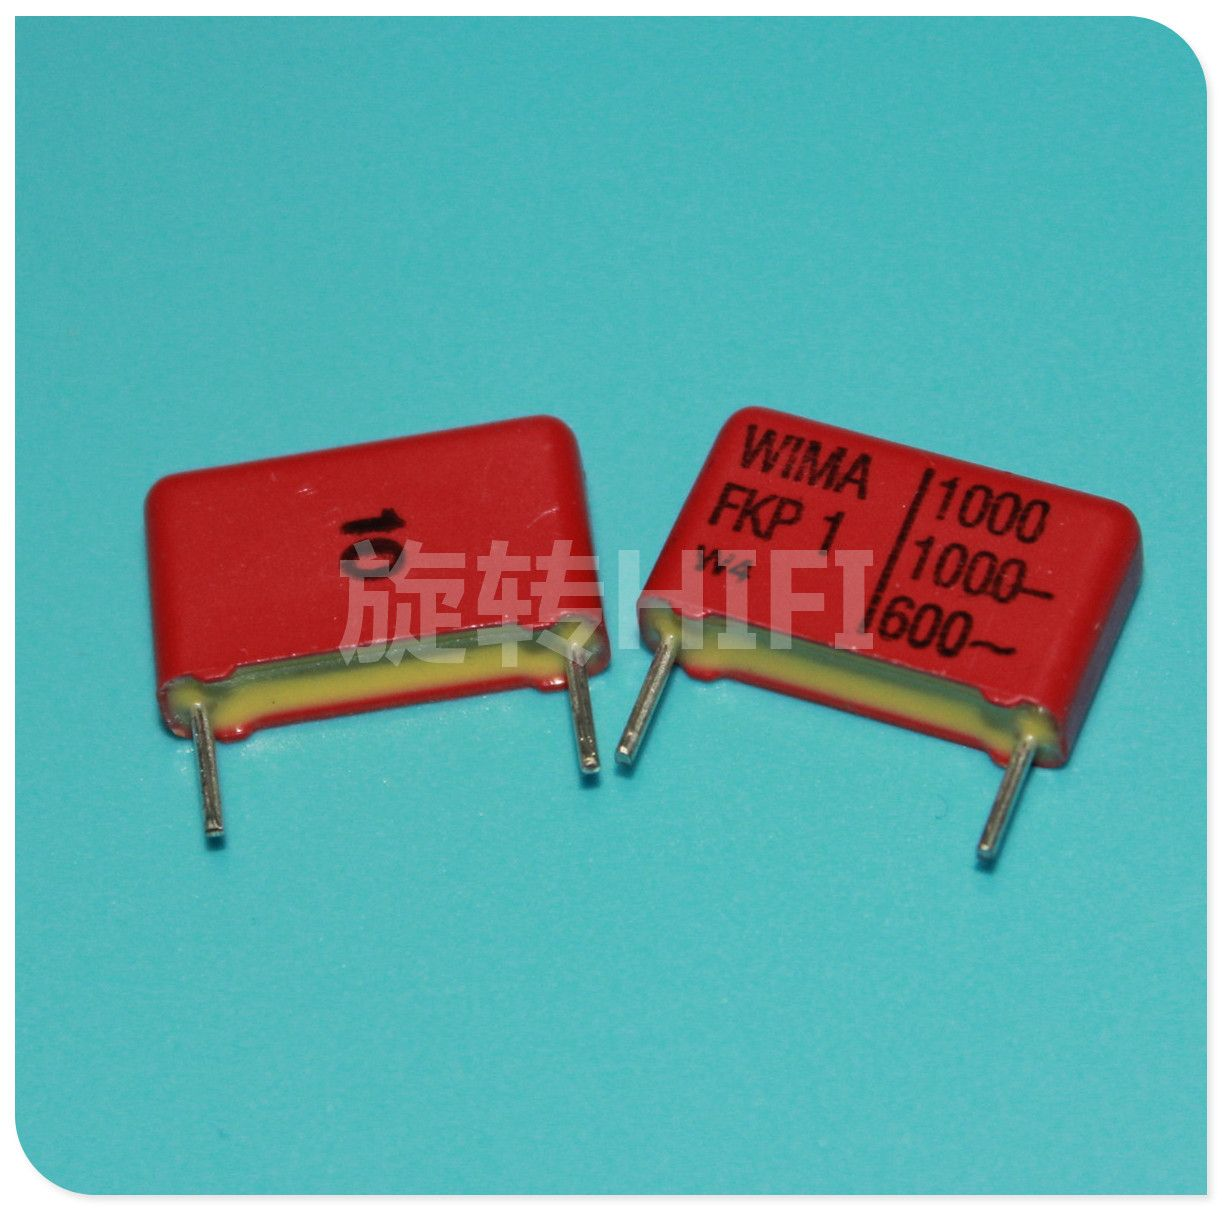 20pcs Wima Fkp1 1000pf 1nf 102 1000v New For Audio Coupling How To Place A Capacitor In Circuit P15 Free Shipping